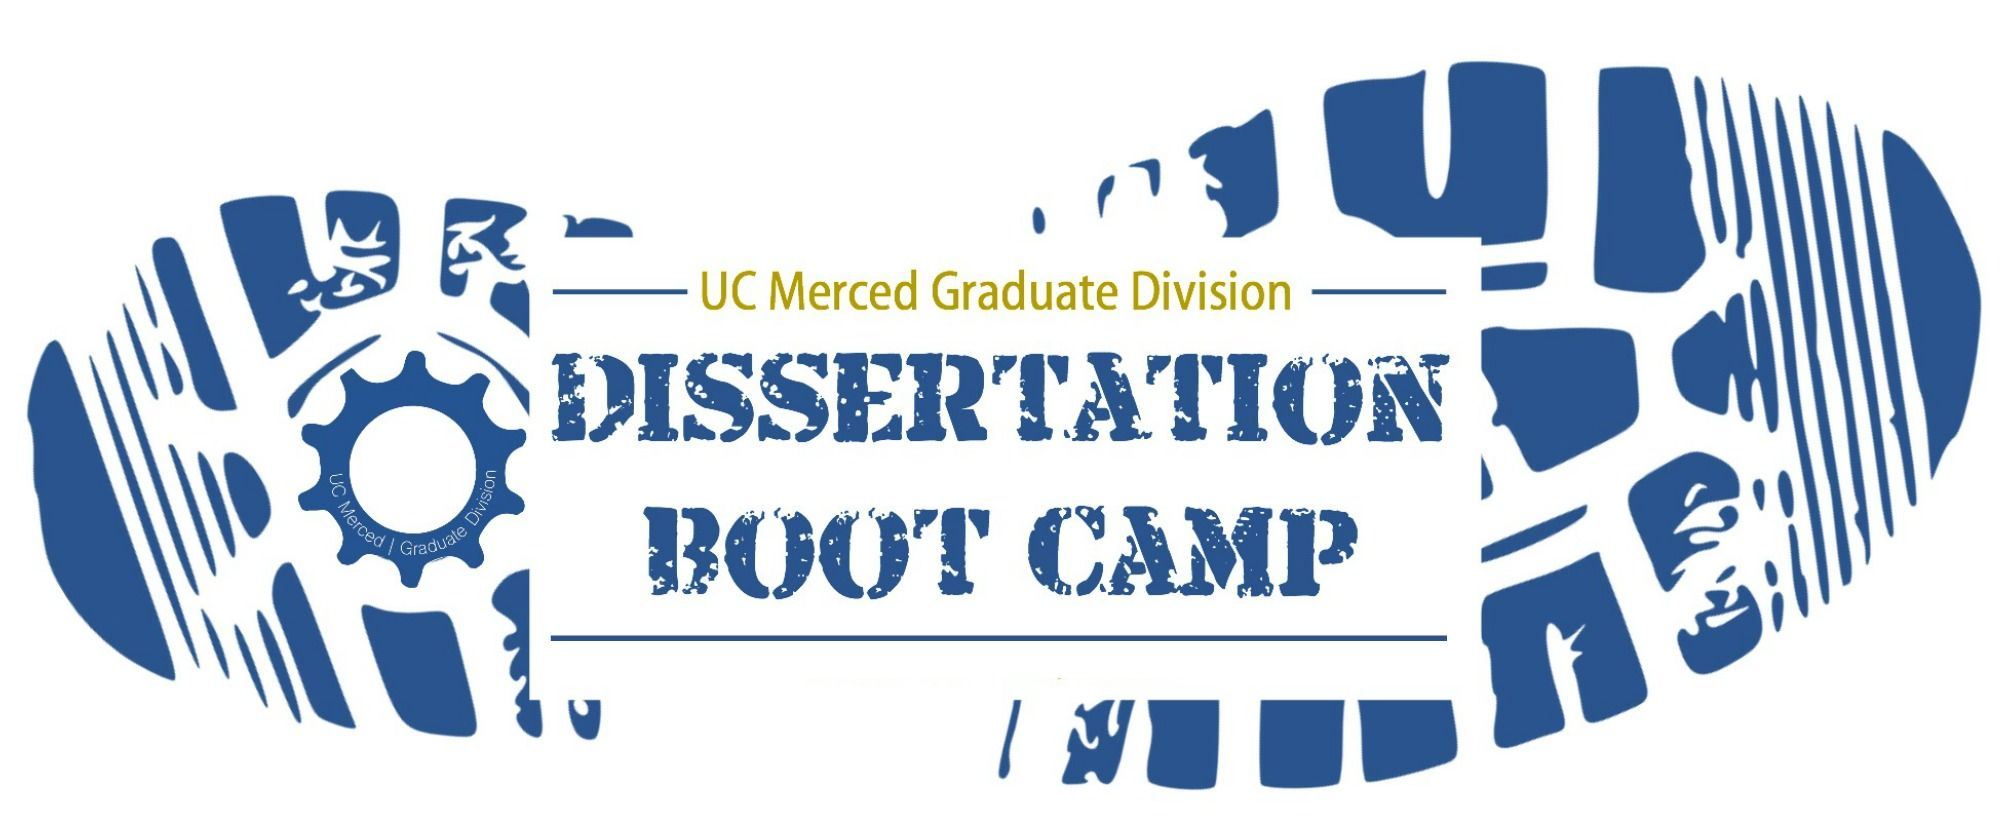 thesis boot camp Thesis and dissertation boot camp was an inspiration to me and played a vital roll in the completion of my phd in nursing i had been in process with the program for several years and was in desperate need of encouragement, guidance and someone to help me stay on track.